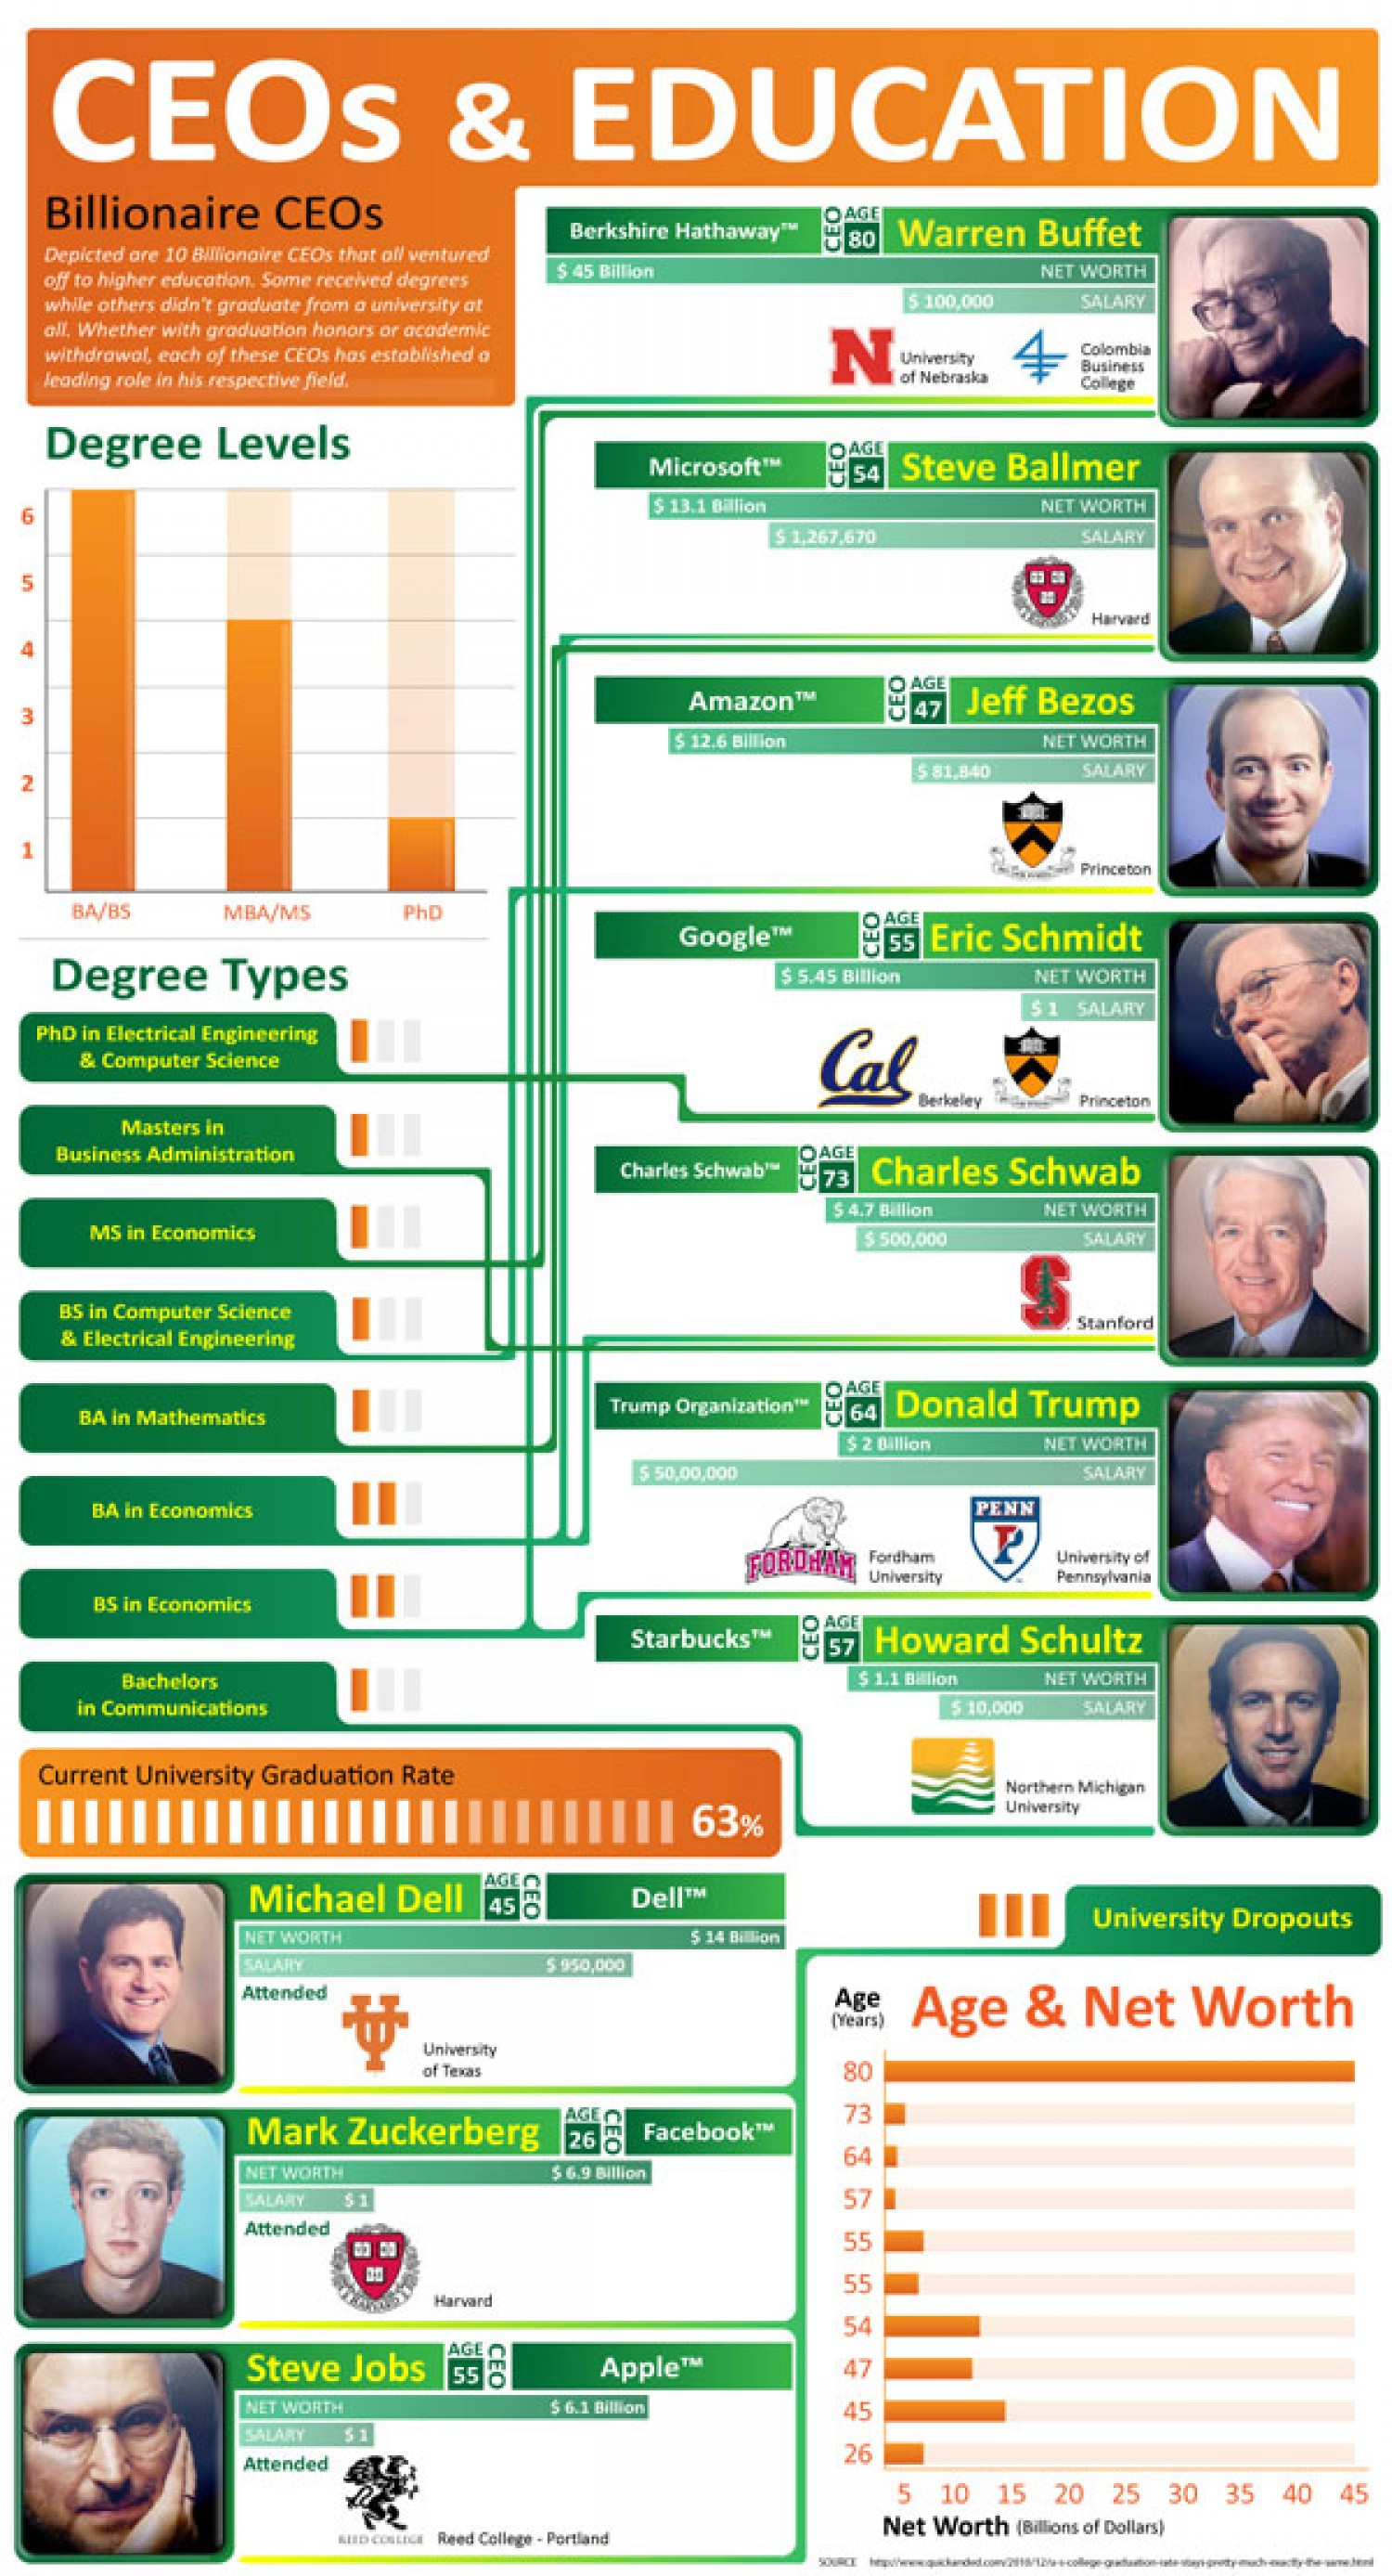 11. CEOs and Their Education